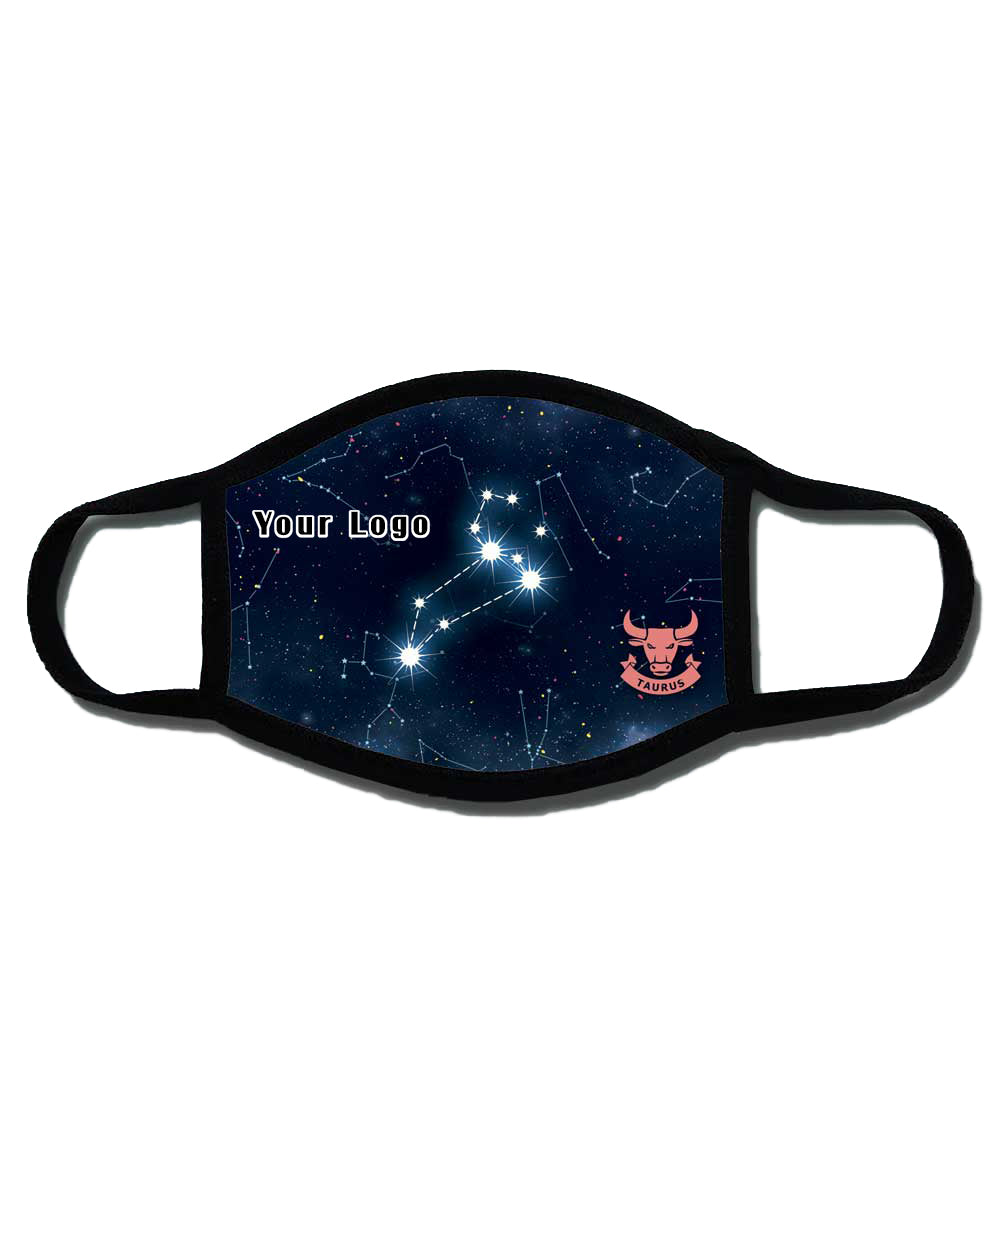 Taurus Face Mask,Reusable, Washable, Breathable